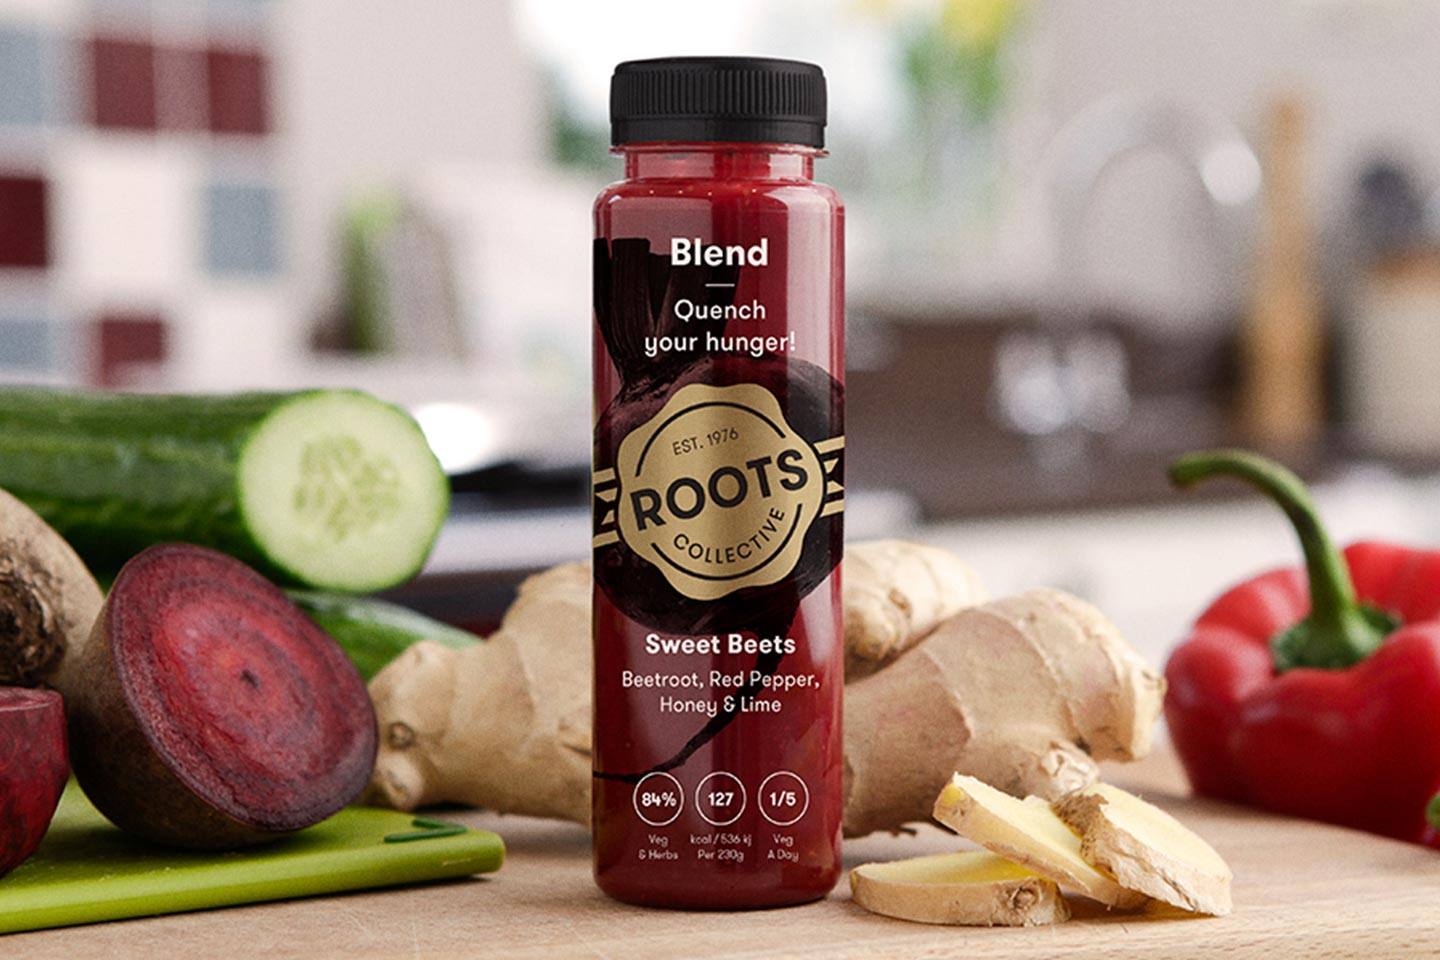 Content roots collective blends beets 1